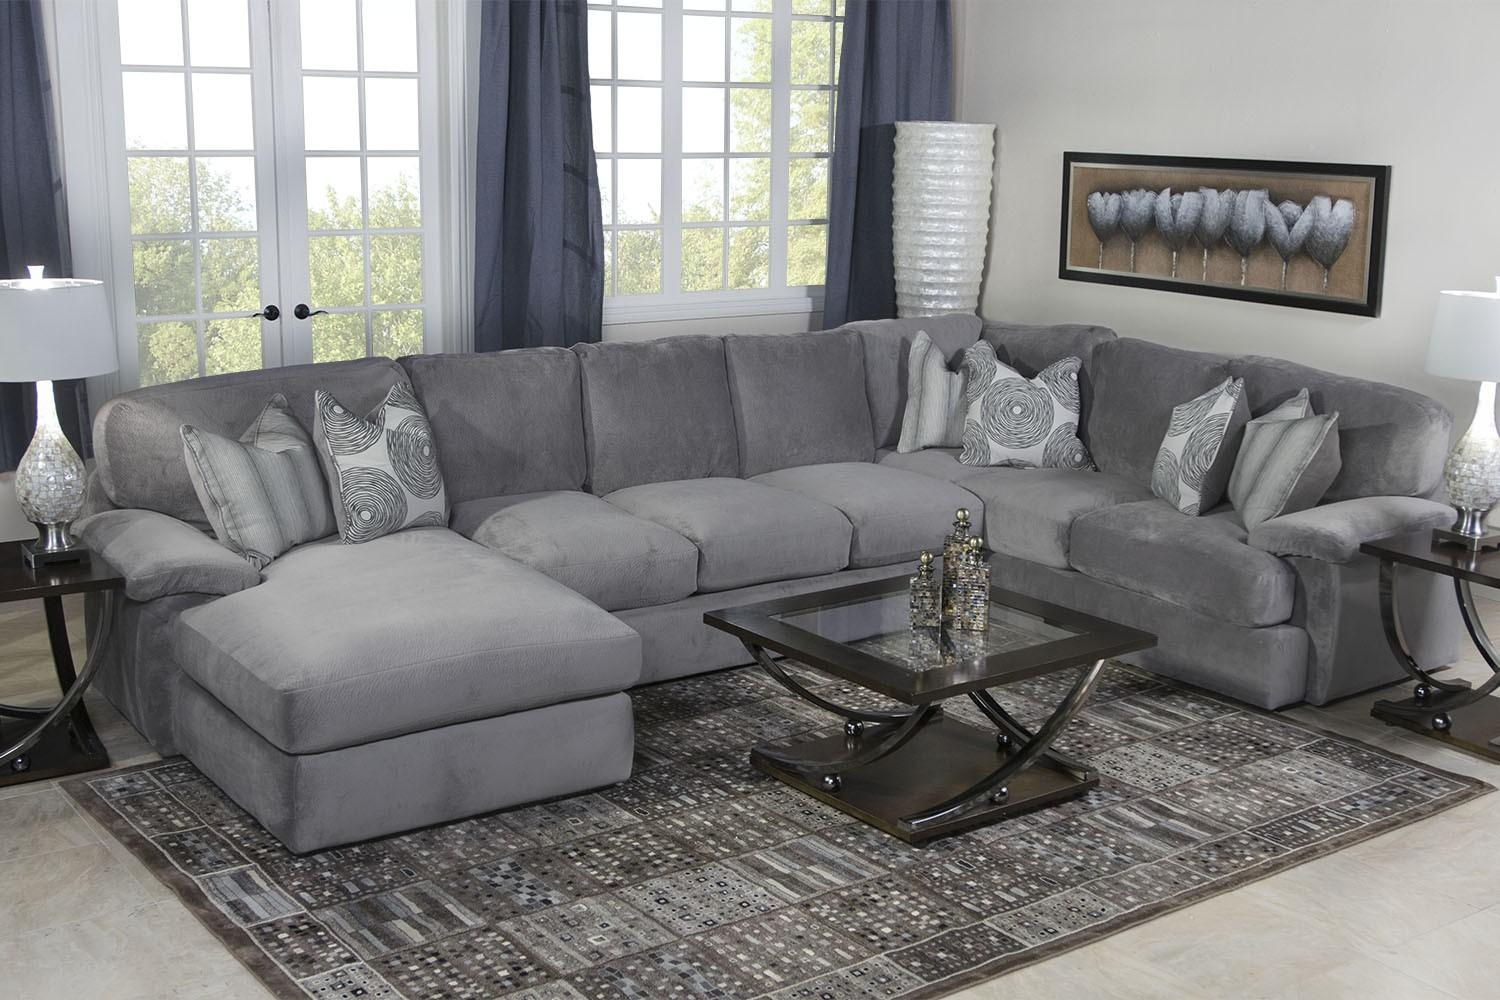 Key West Sectional Living Room In Gray | Mor Furniture For Less Intended For Media Sofa Sectionals (Image 8 of 20)